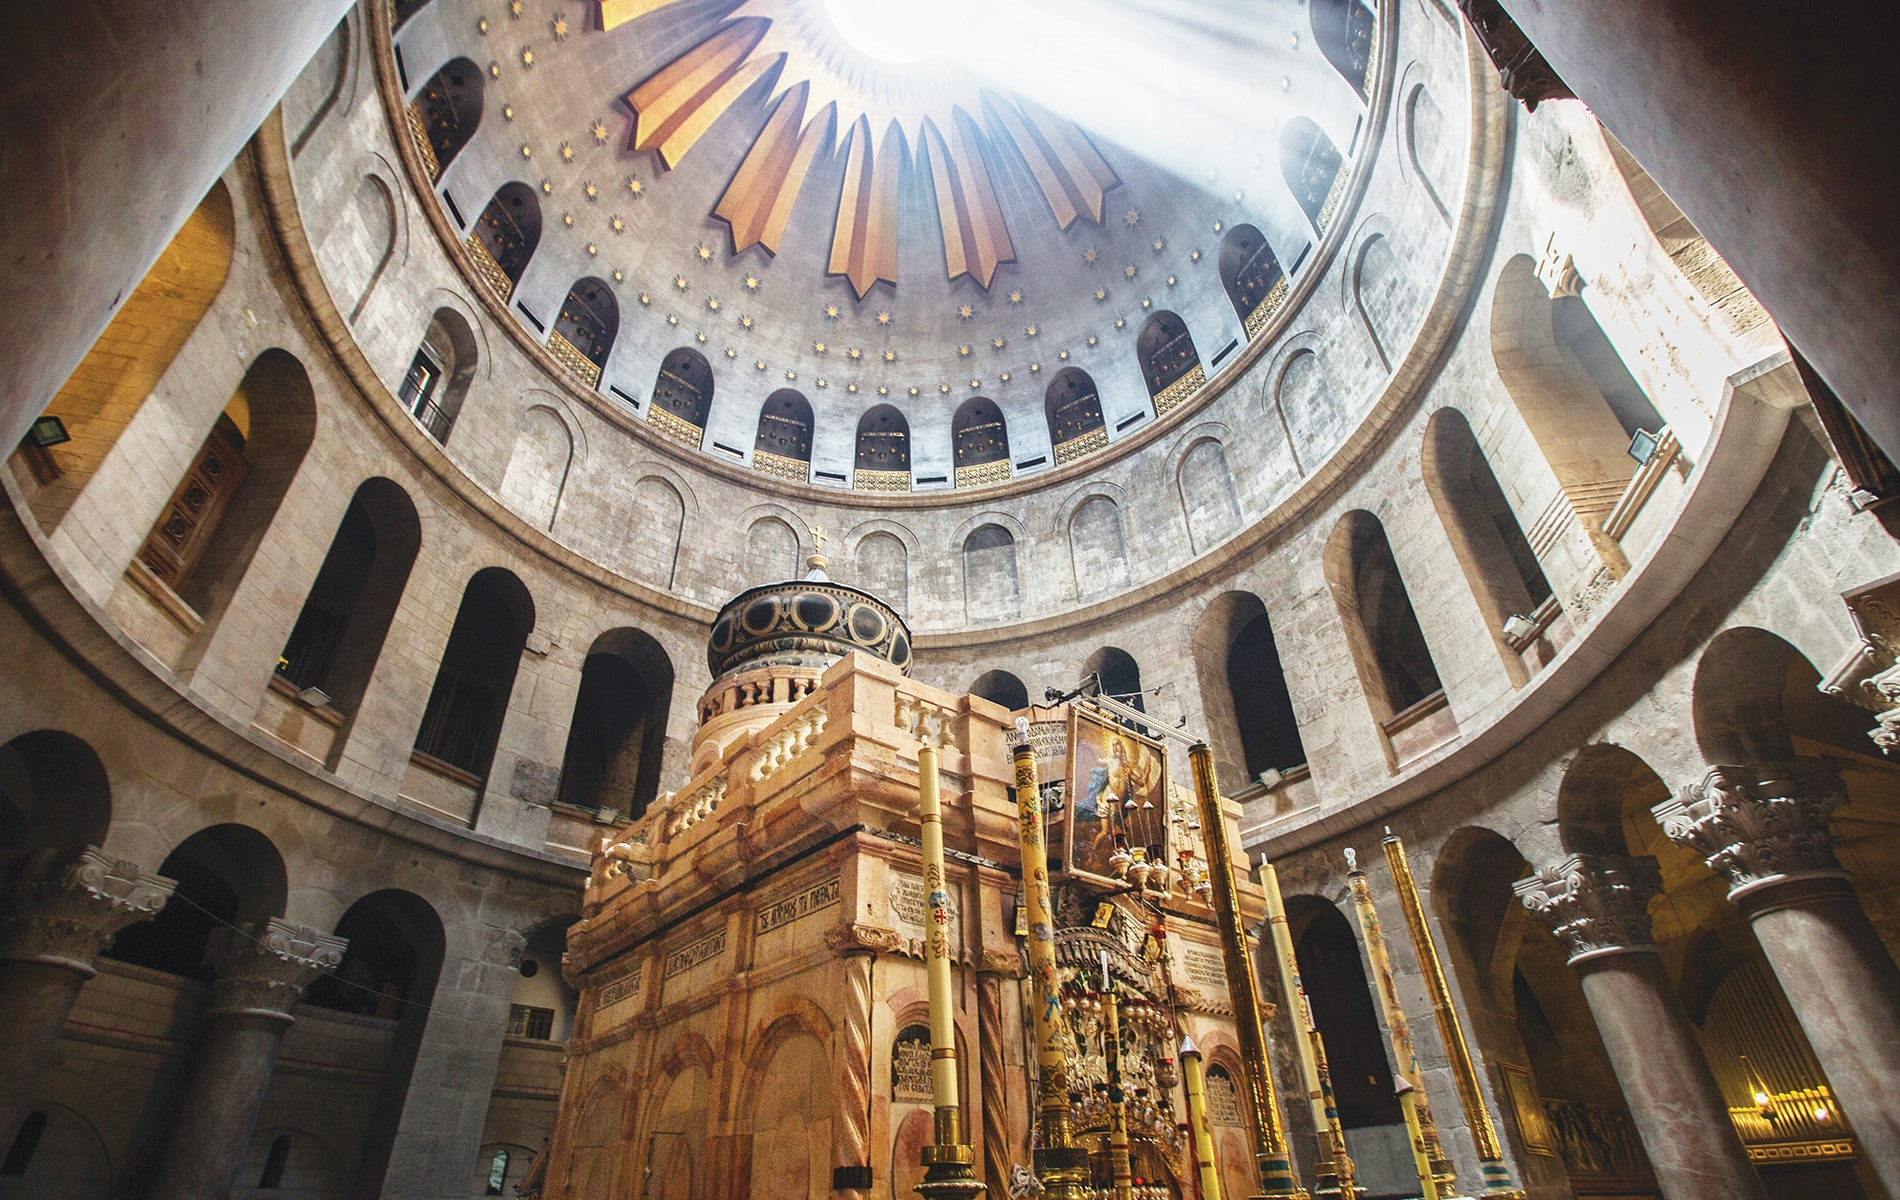 The majestic domed ceiling over Christ's grave in the Church of the Holy Sepulchre